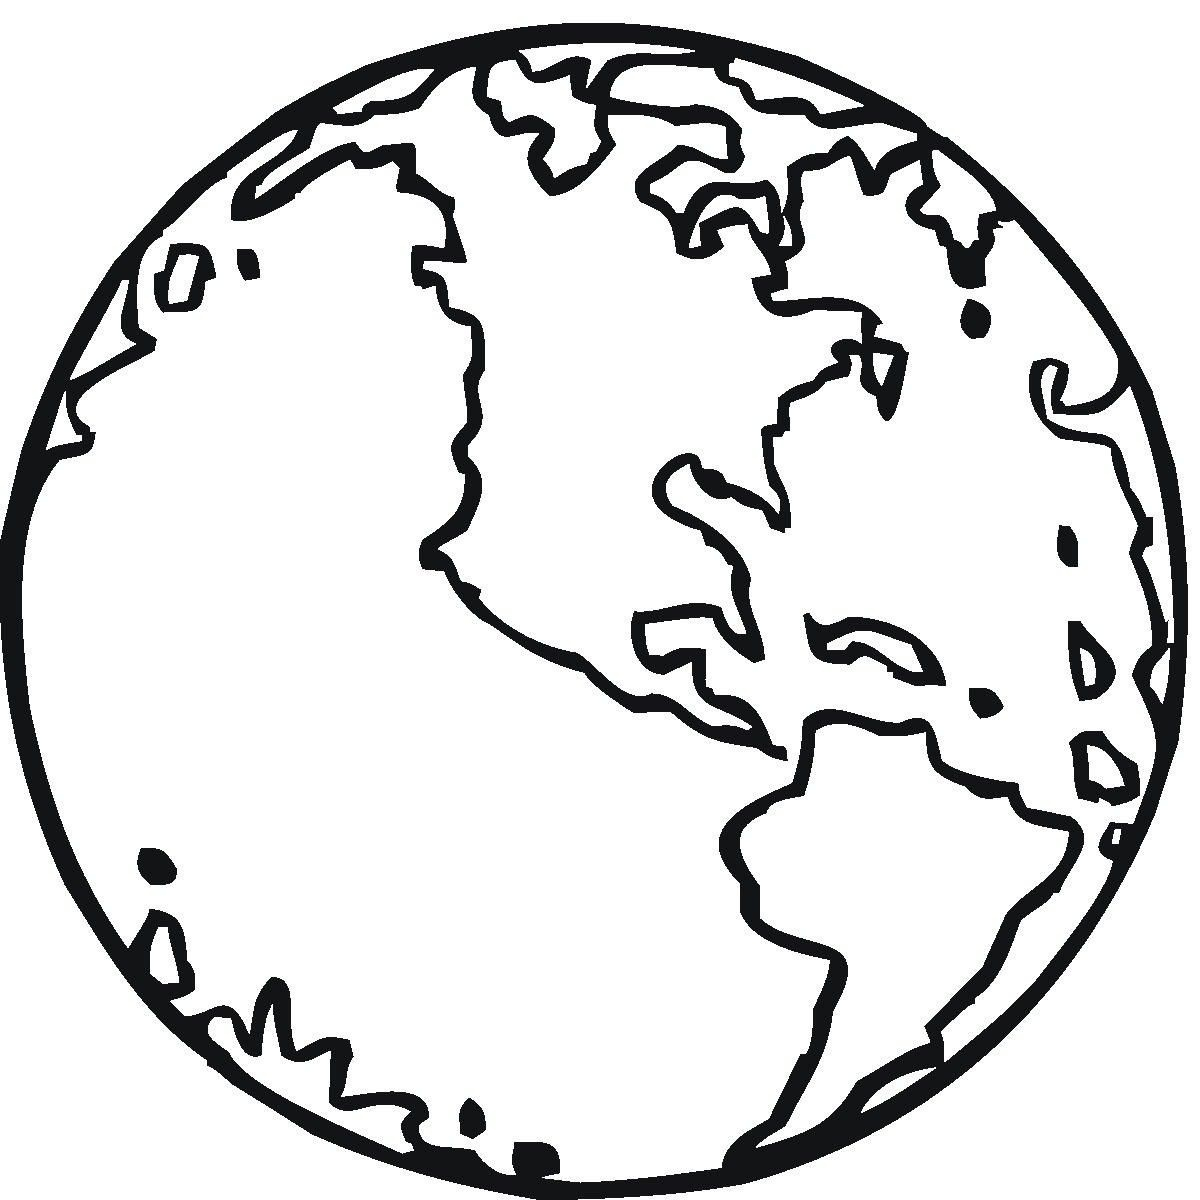 Free Printable Earth Coloring Pages For Kids   Stuff   Earth - Earth Coloring Pages Free Printable